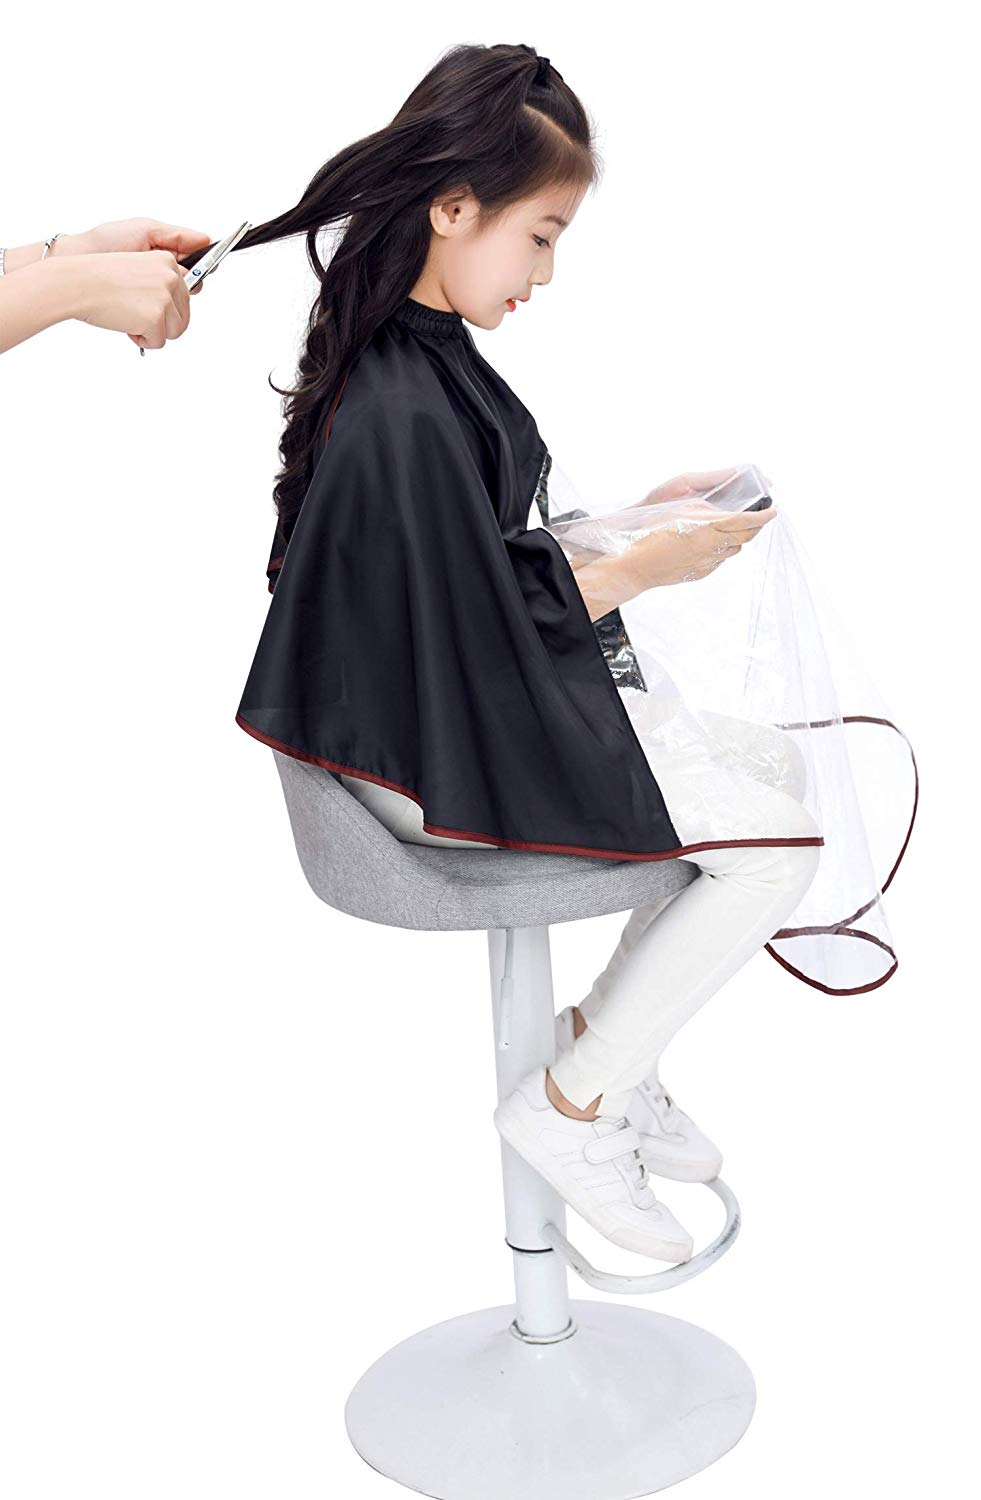 Kids Haircut Cape with Viewing Window